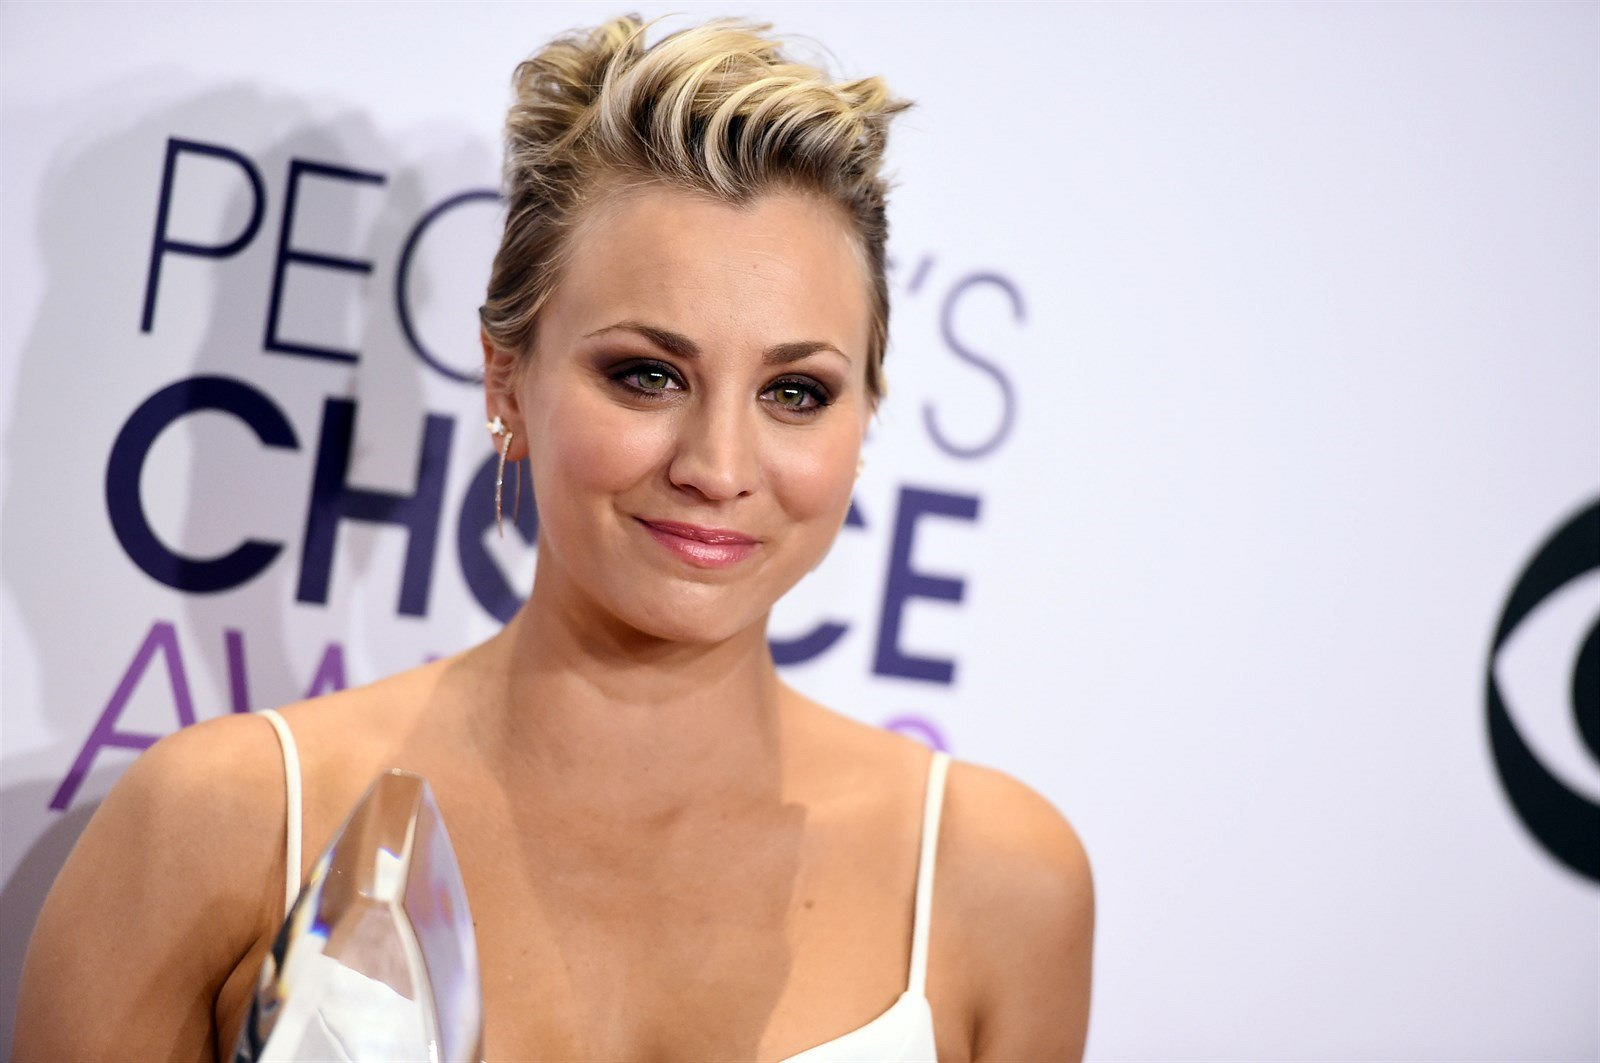 Kaley Cuoco na People's Choice Awards (Los Angeles, 7. ledna 2015)